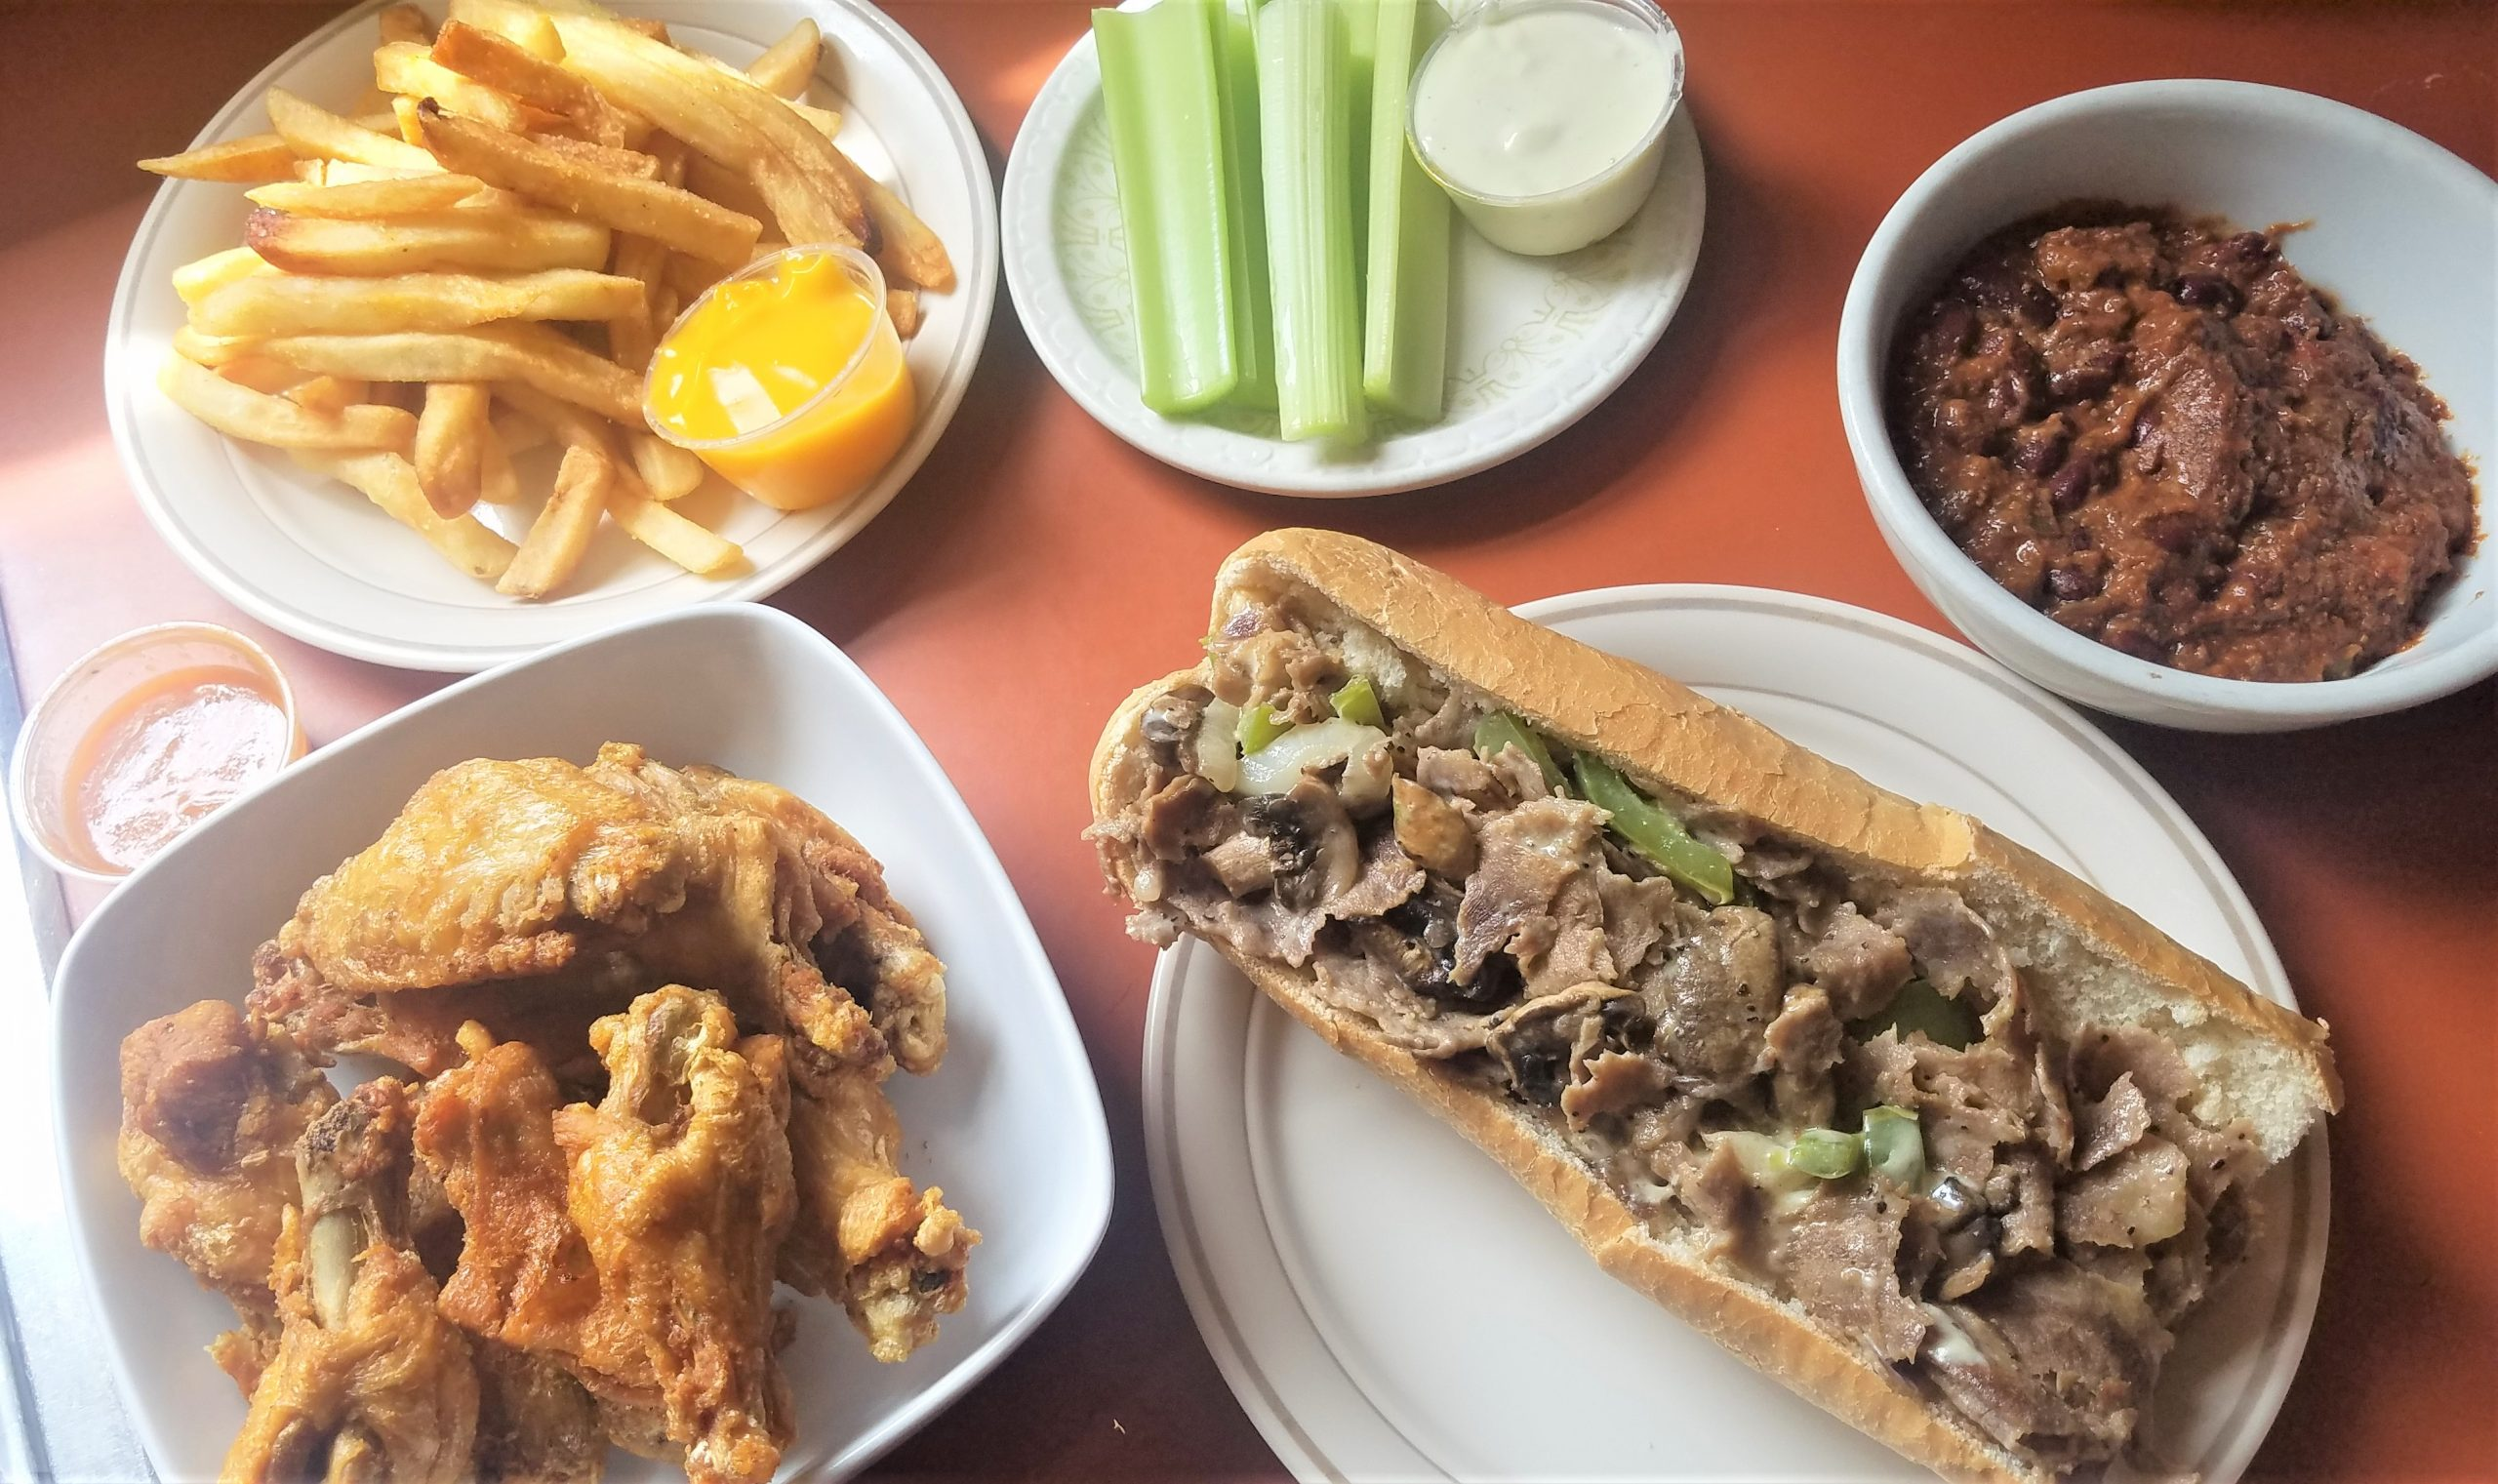 A selection of popular items at the William Penn Tavern including chicken wings with kitchen sink sauce on the side, South Jersey cheese steak, chili, and french fries with cheese. (photo: Rick Handler)